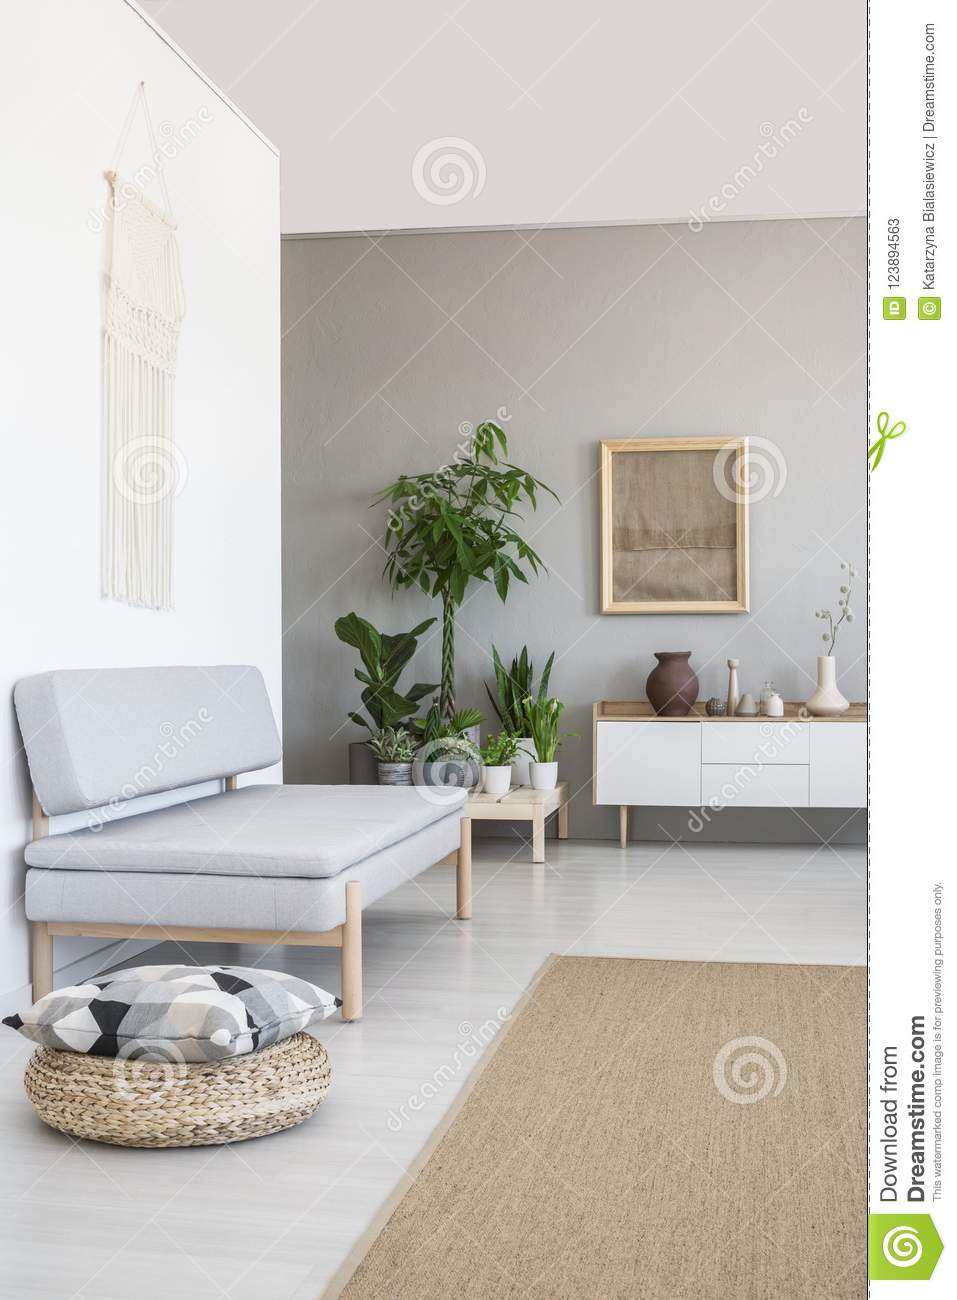 living room pouf furniture couches pillow on next to grey couch in scandi interior